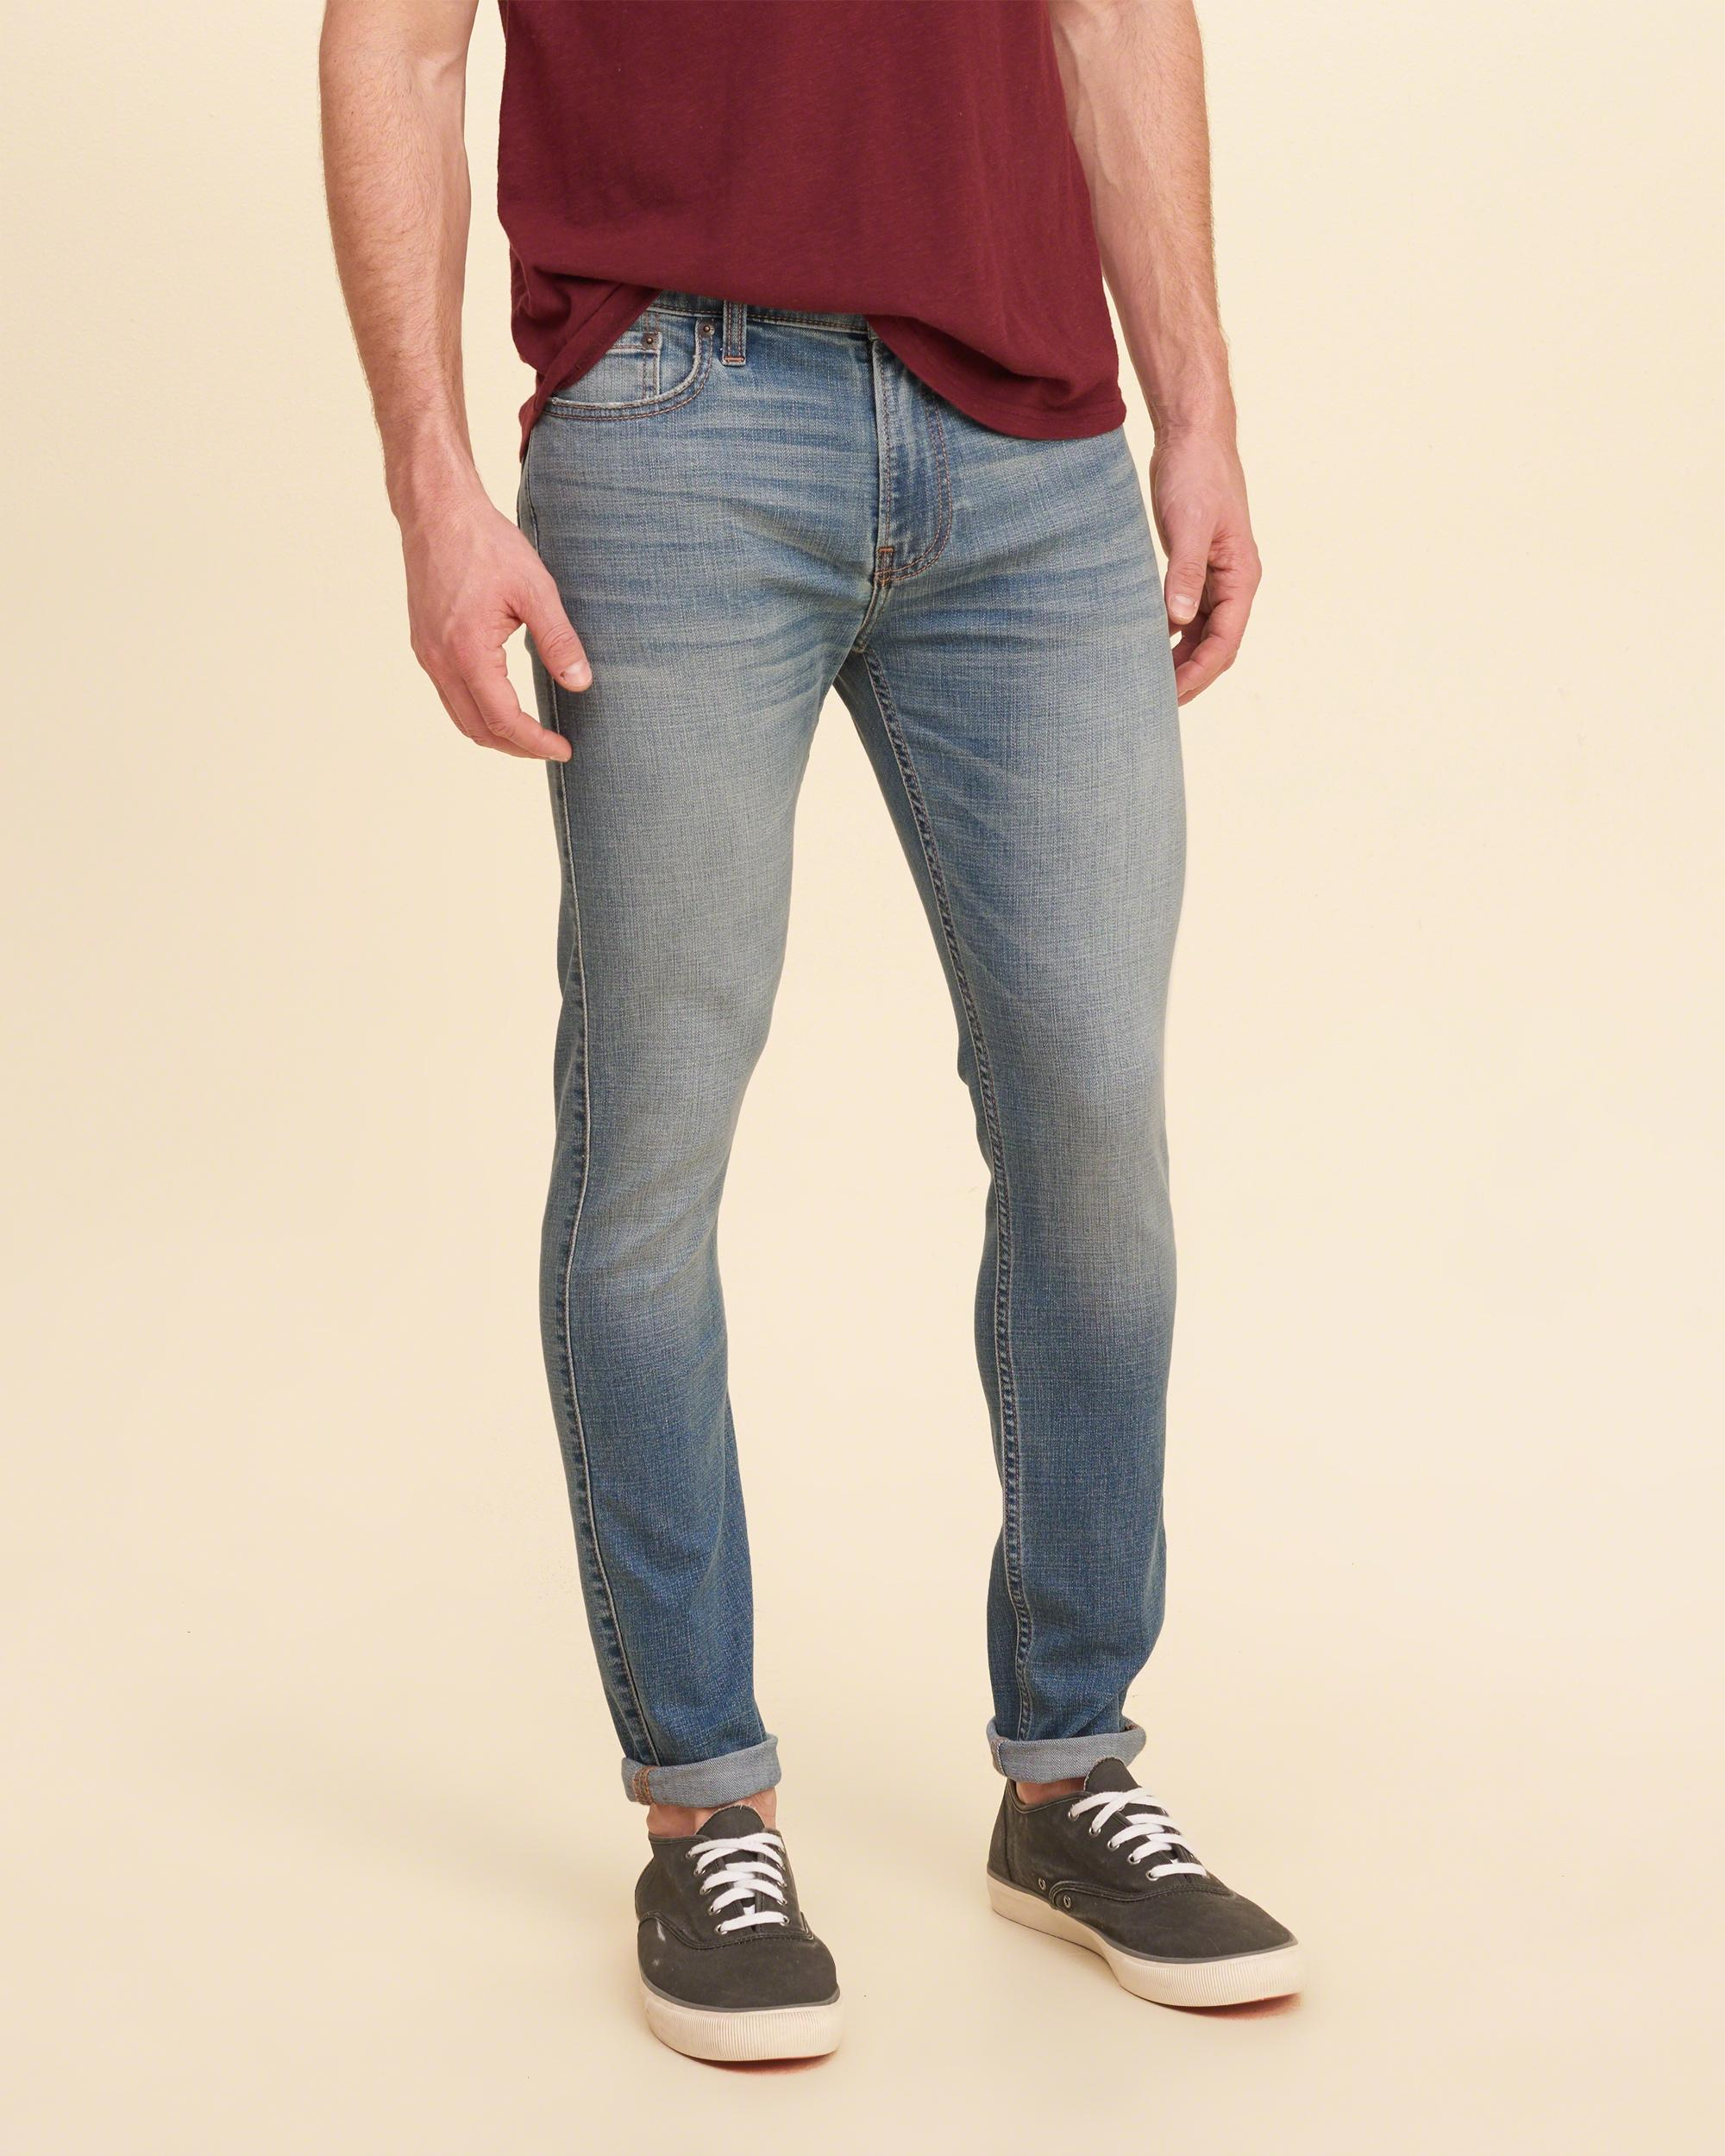 Lyst - Hollister Extreme Skinny Jeans in Blue for Men